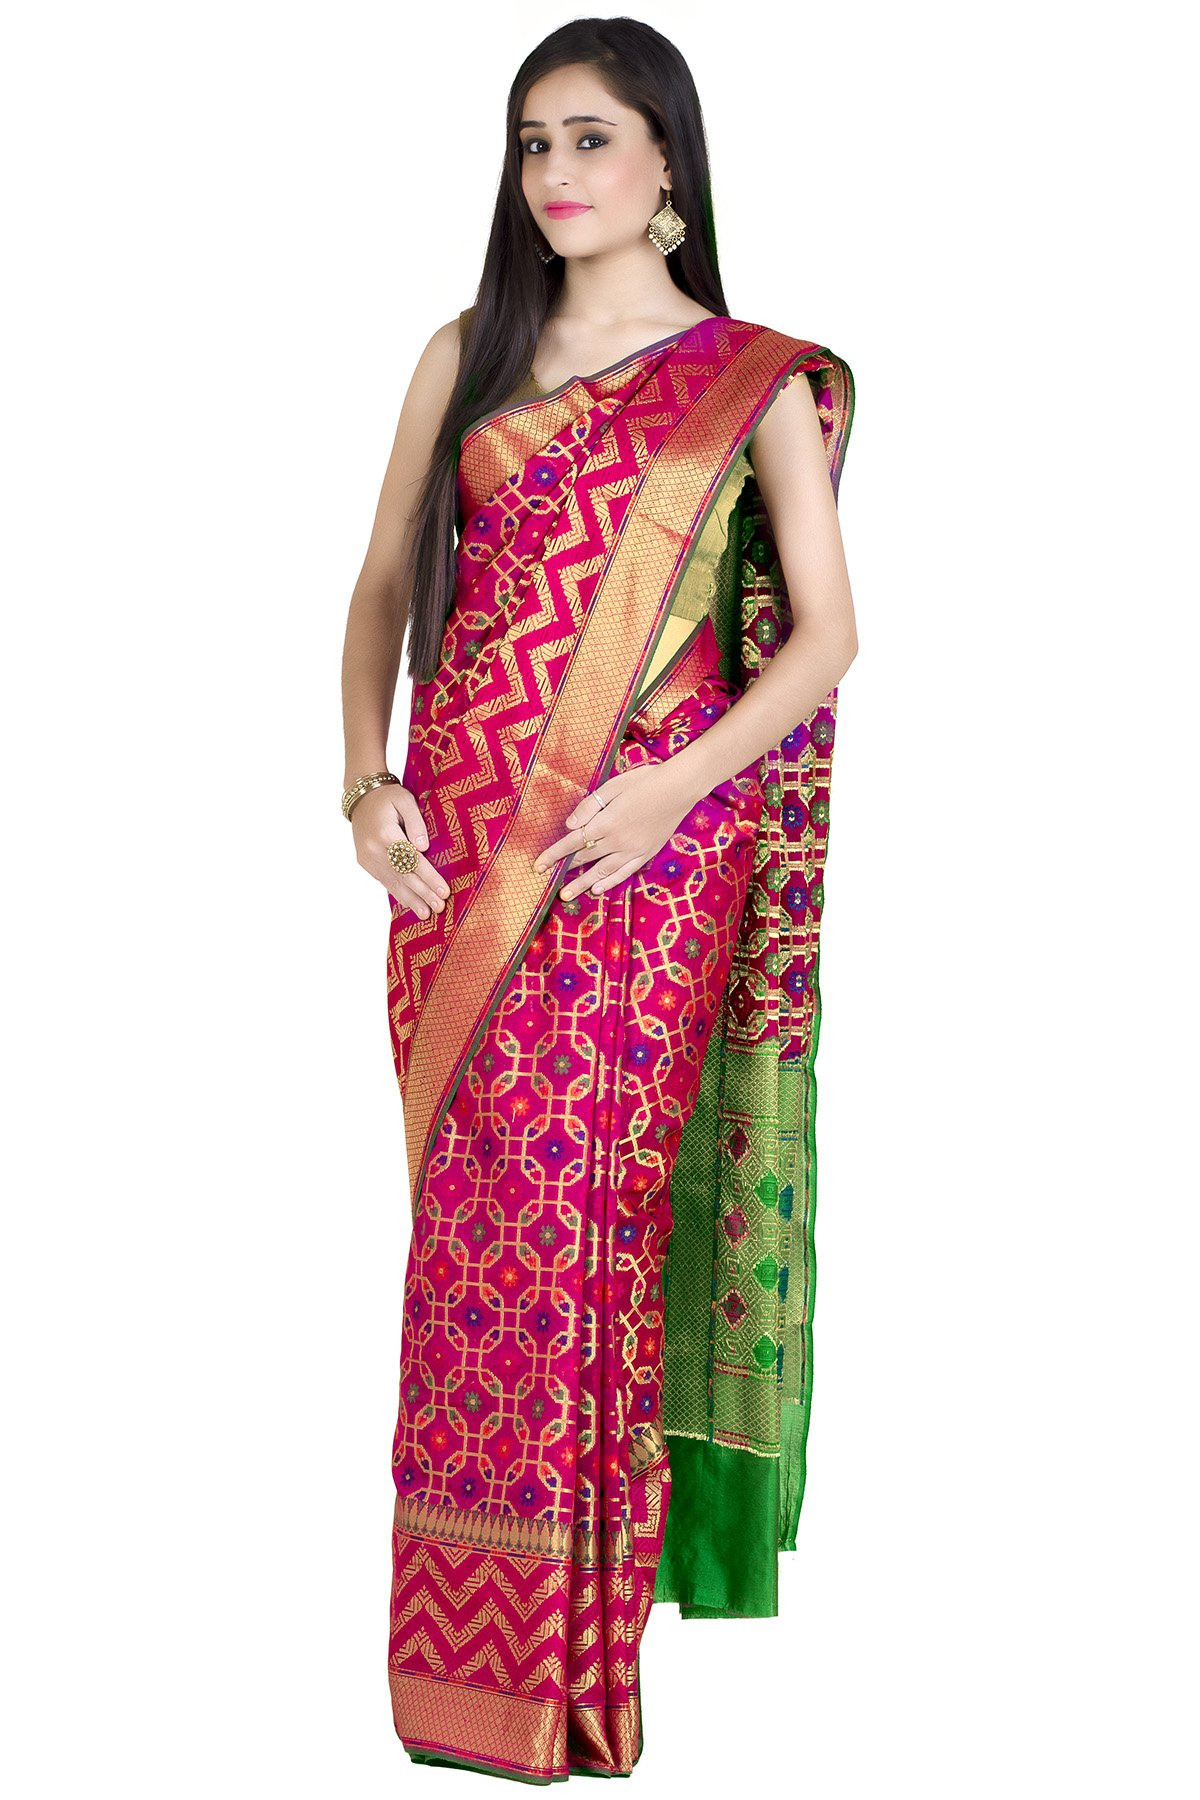 Chandrakala Women's Red Cotton Silk Banarasi Saree(1242RED) by Chandrakala (Image #3)